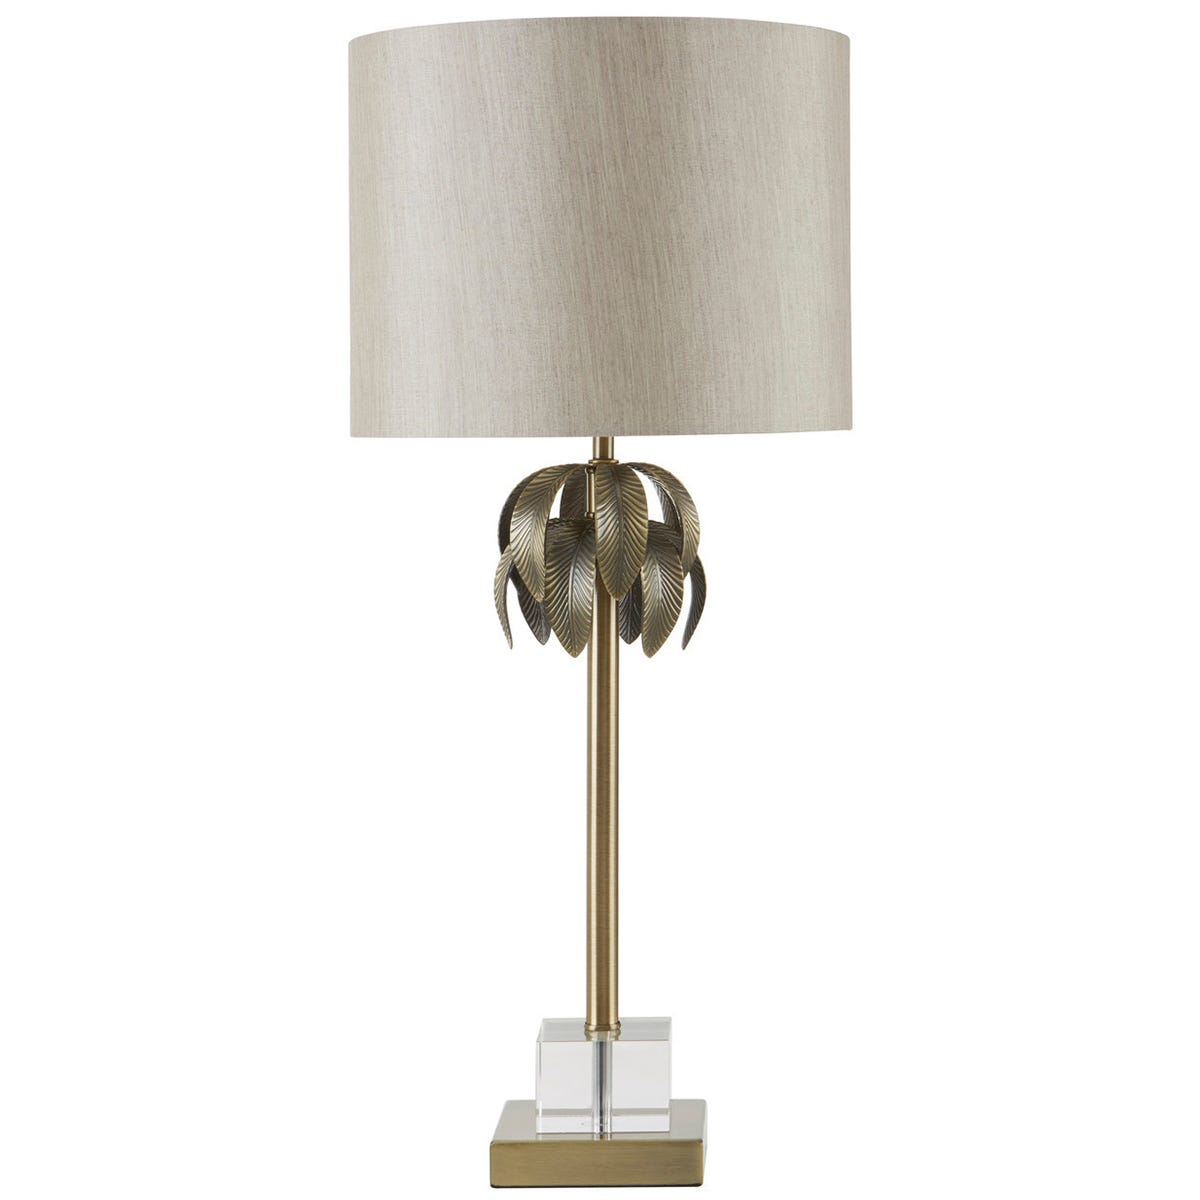 Interiors By Premier Table Lamp - Antique Brass Finish/Light Grey Shade